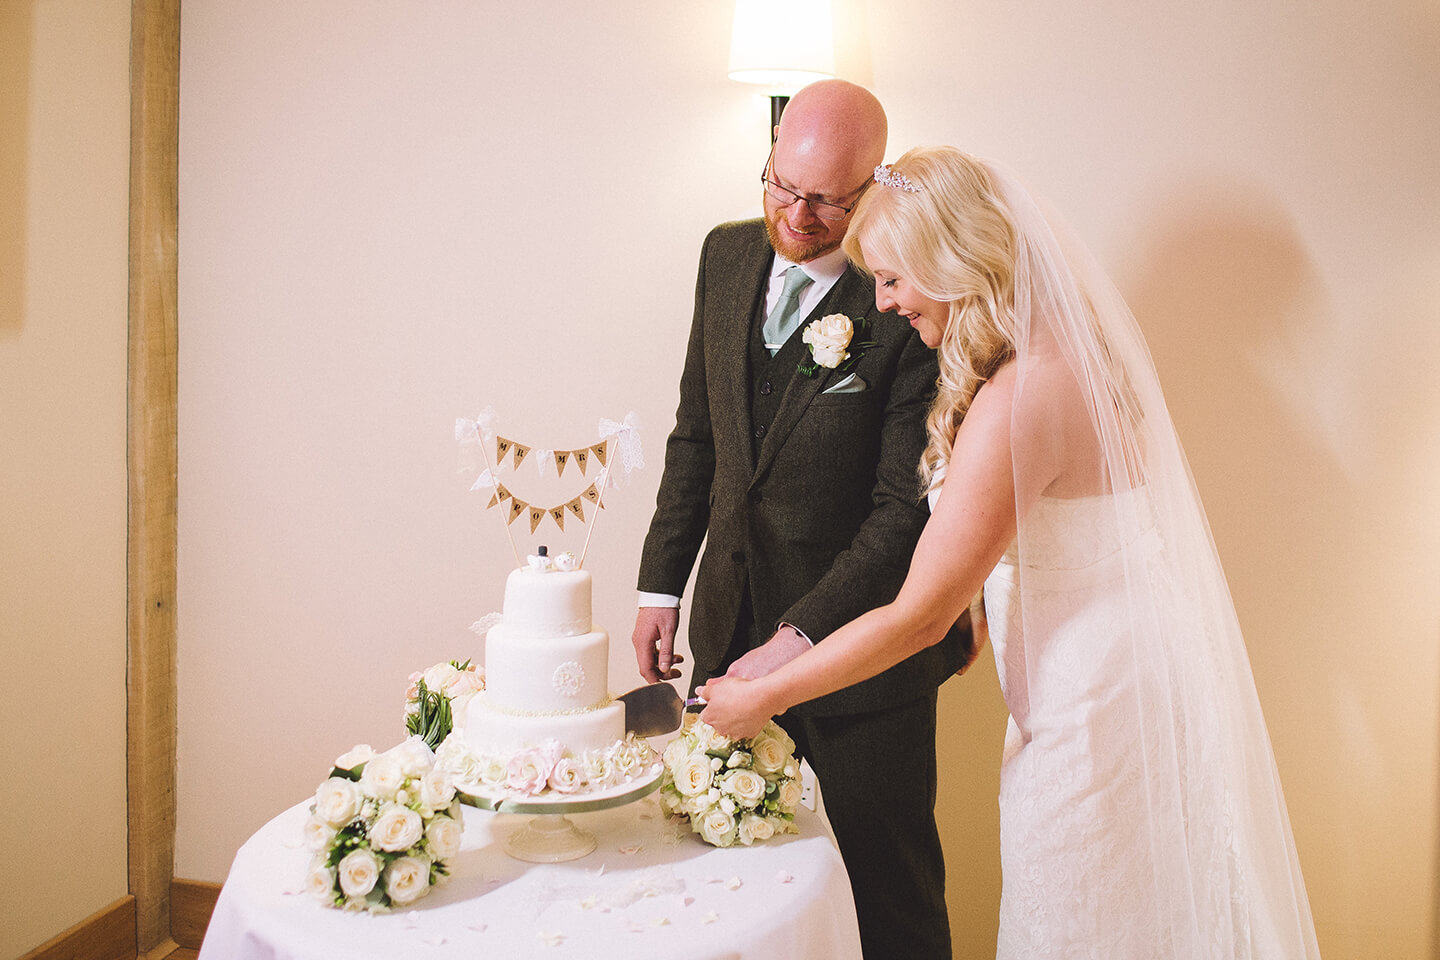 The happy couple cut their wedding cake together in front of family and friends – key wedding moments